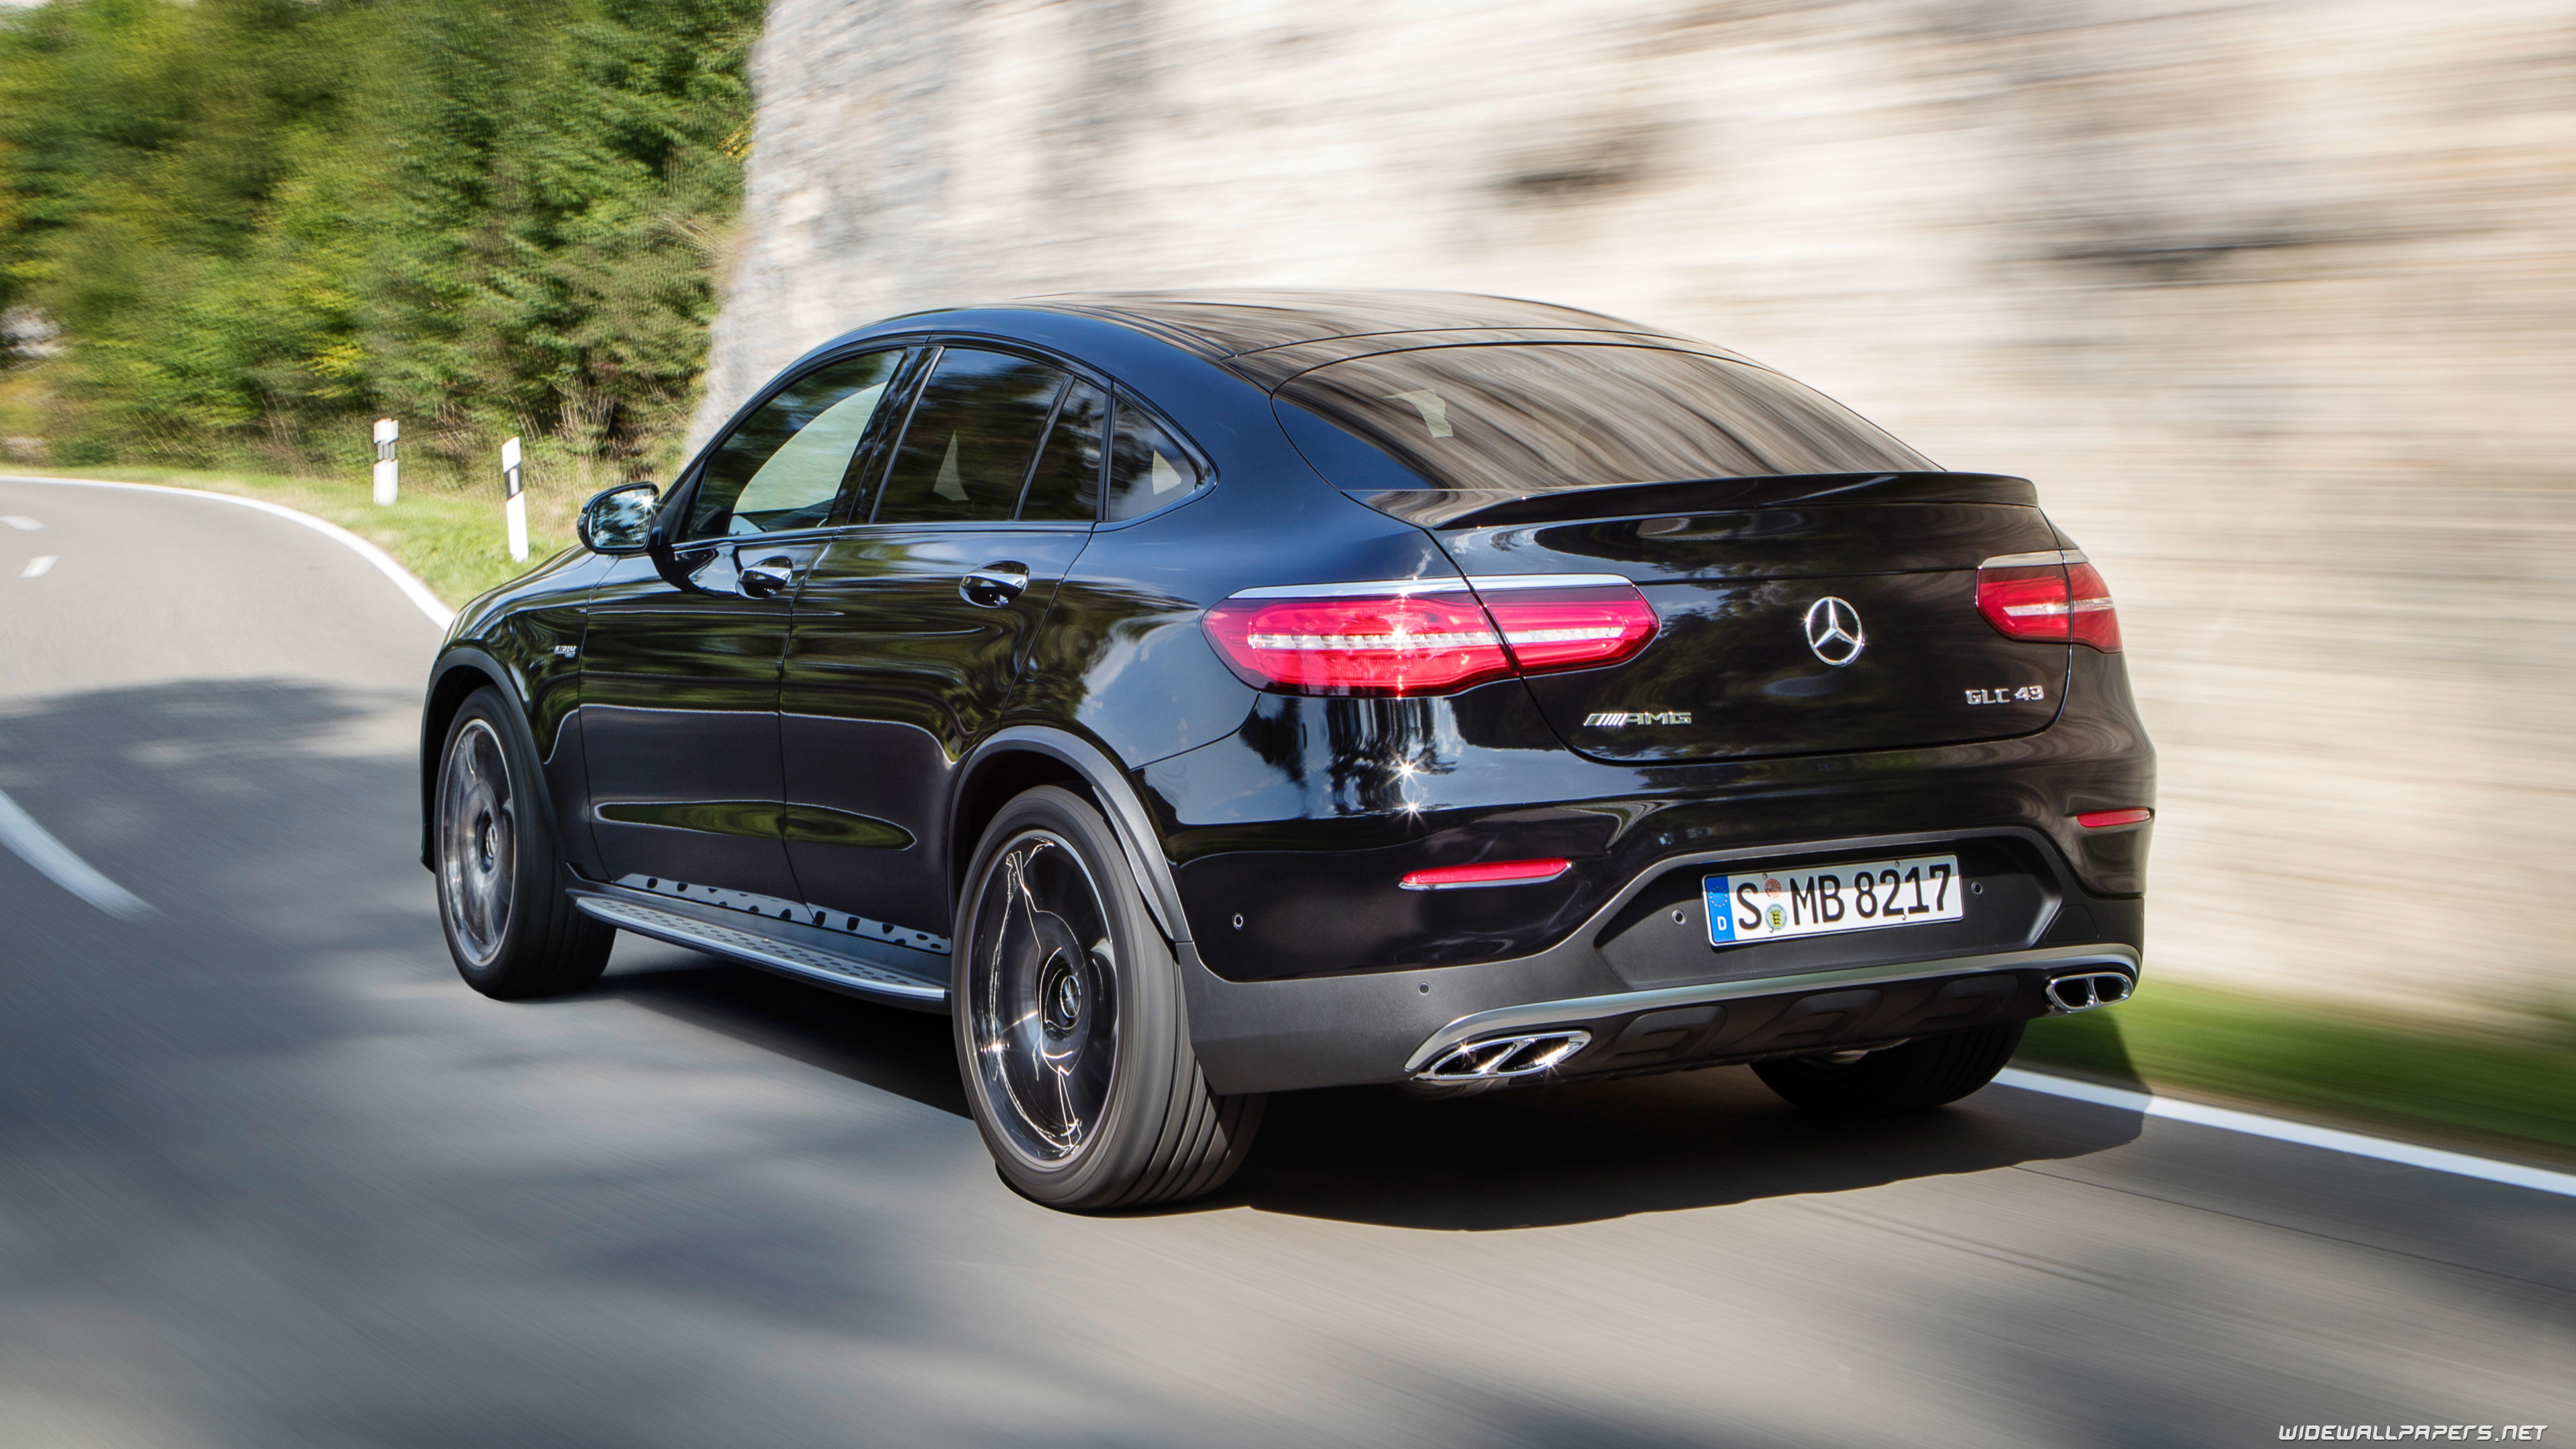 Mercedes Benz Glc Class Coupe Cars Desktop Wallpapers 4k Ultra Hd Page 2